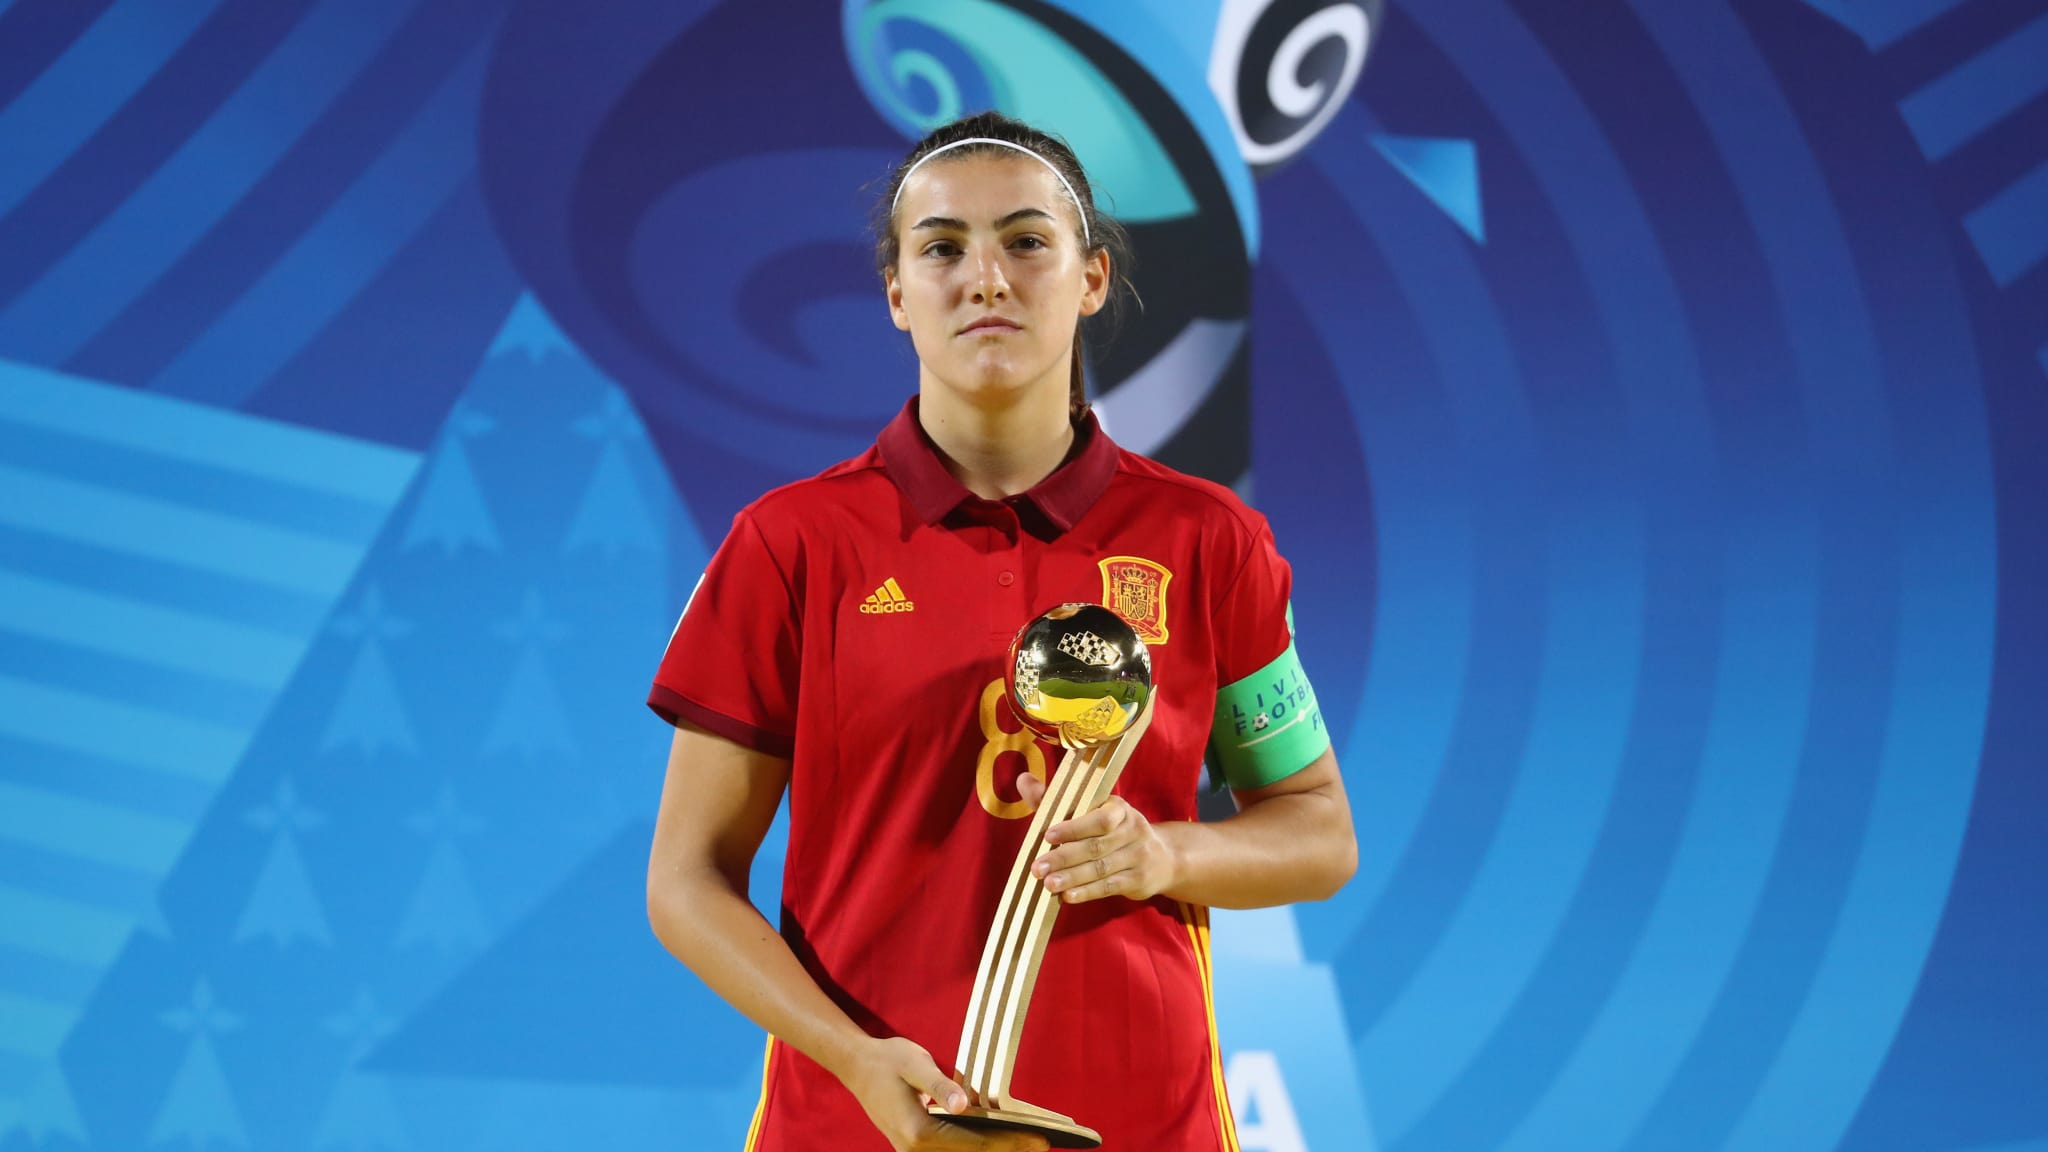 Spain v Japan - FIFA U-20 Women's World Cup France 2018 Final - Patri Guijarro of Spain poses with the adidas Golden Ball award